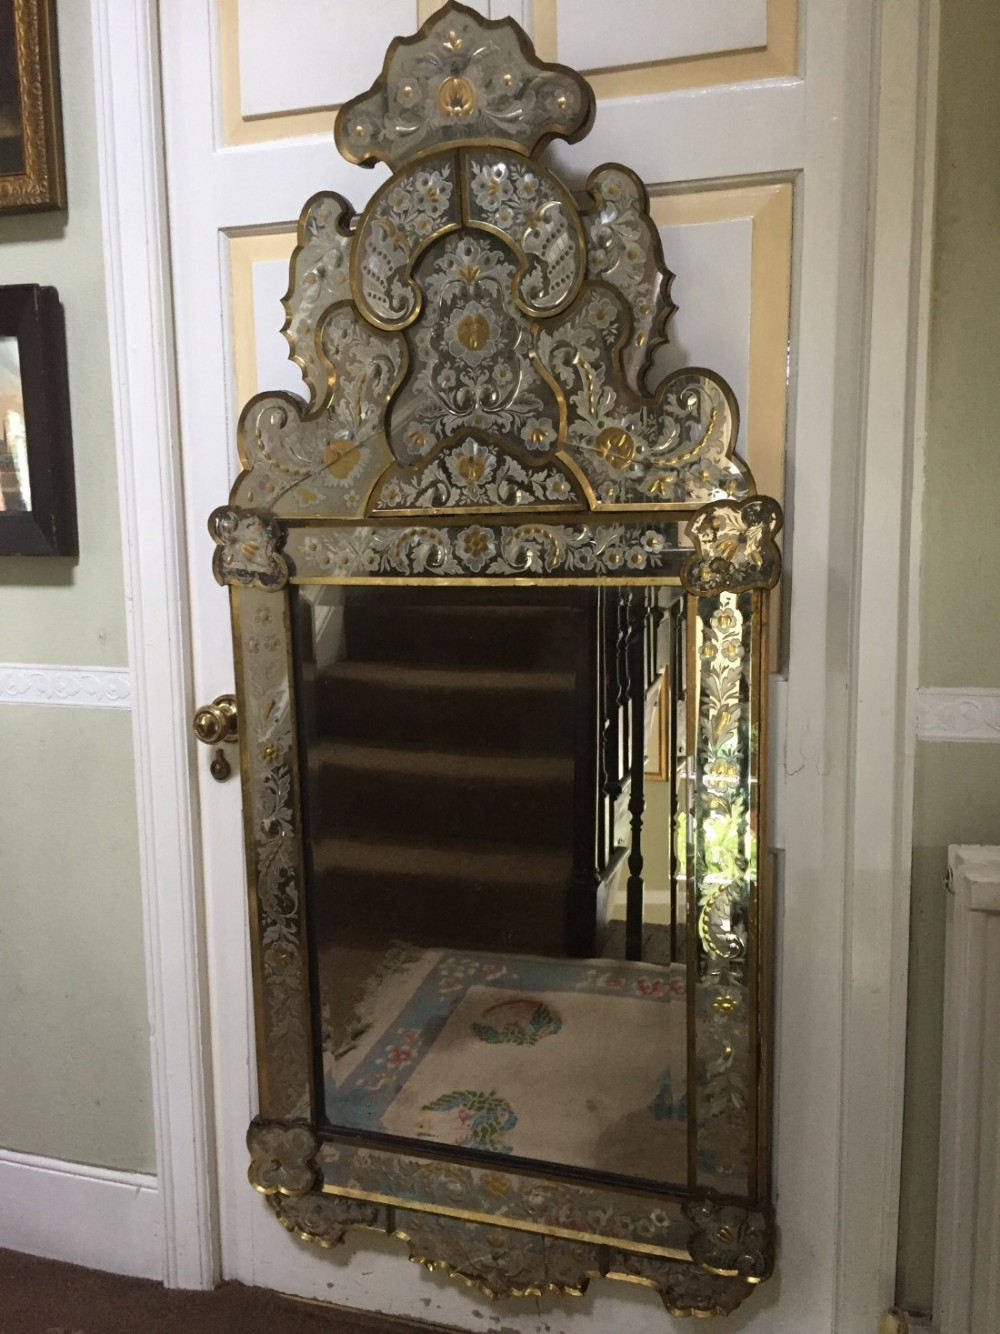 fine and decorative late c19th italian 'verre eglomise' venetian mirror with detailed engraving and gilded highlights and edges